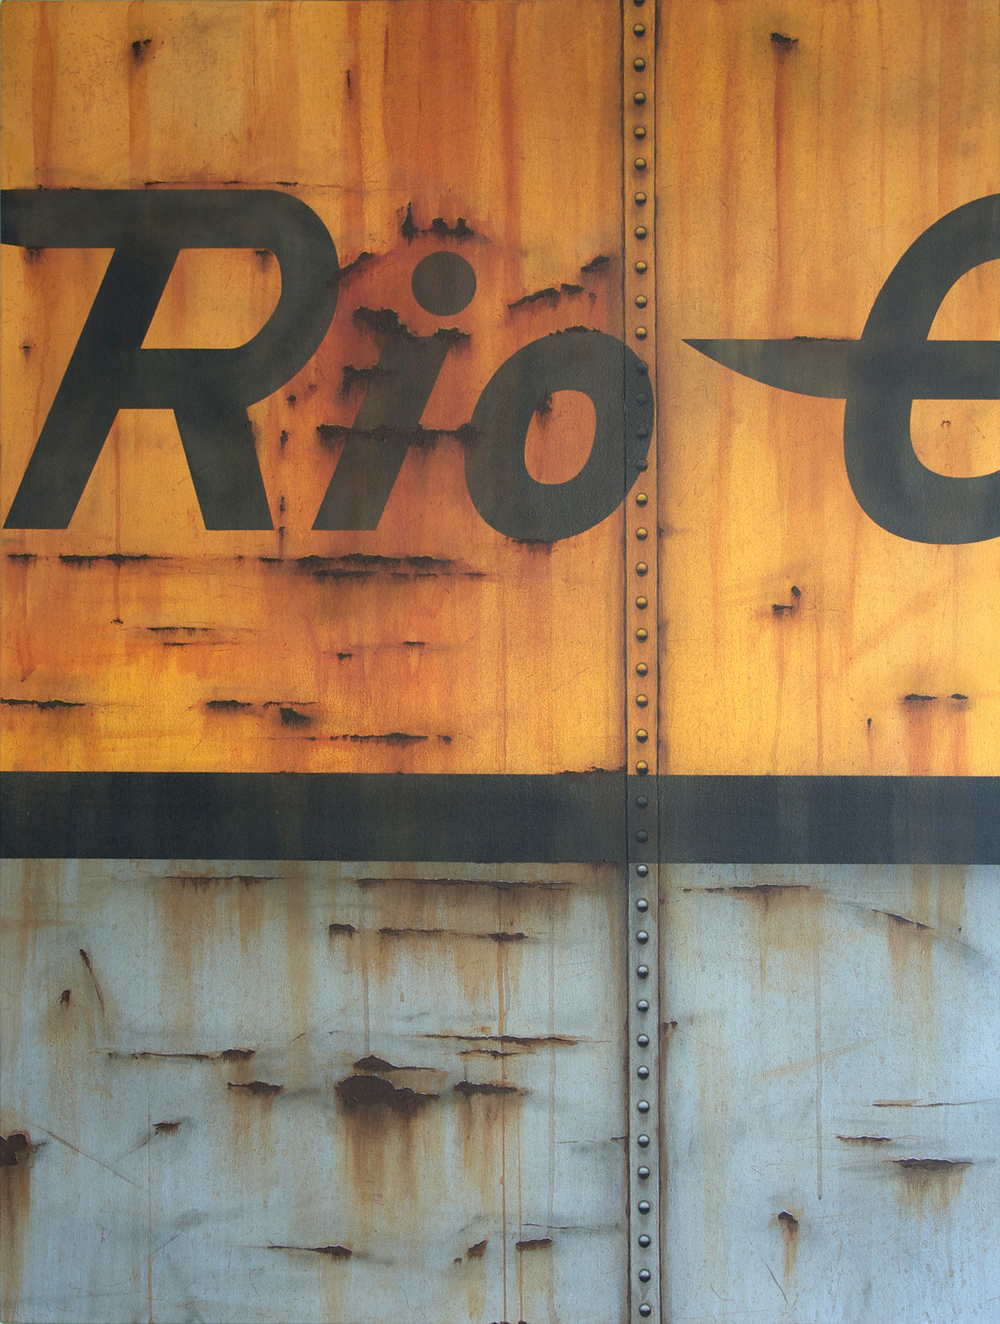 Blank Canvas #59 - Rio Grande, Freight Train Painting, Boxcar Painting, Railroad Art, Tim Conlon Art